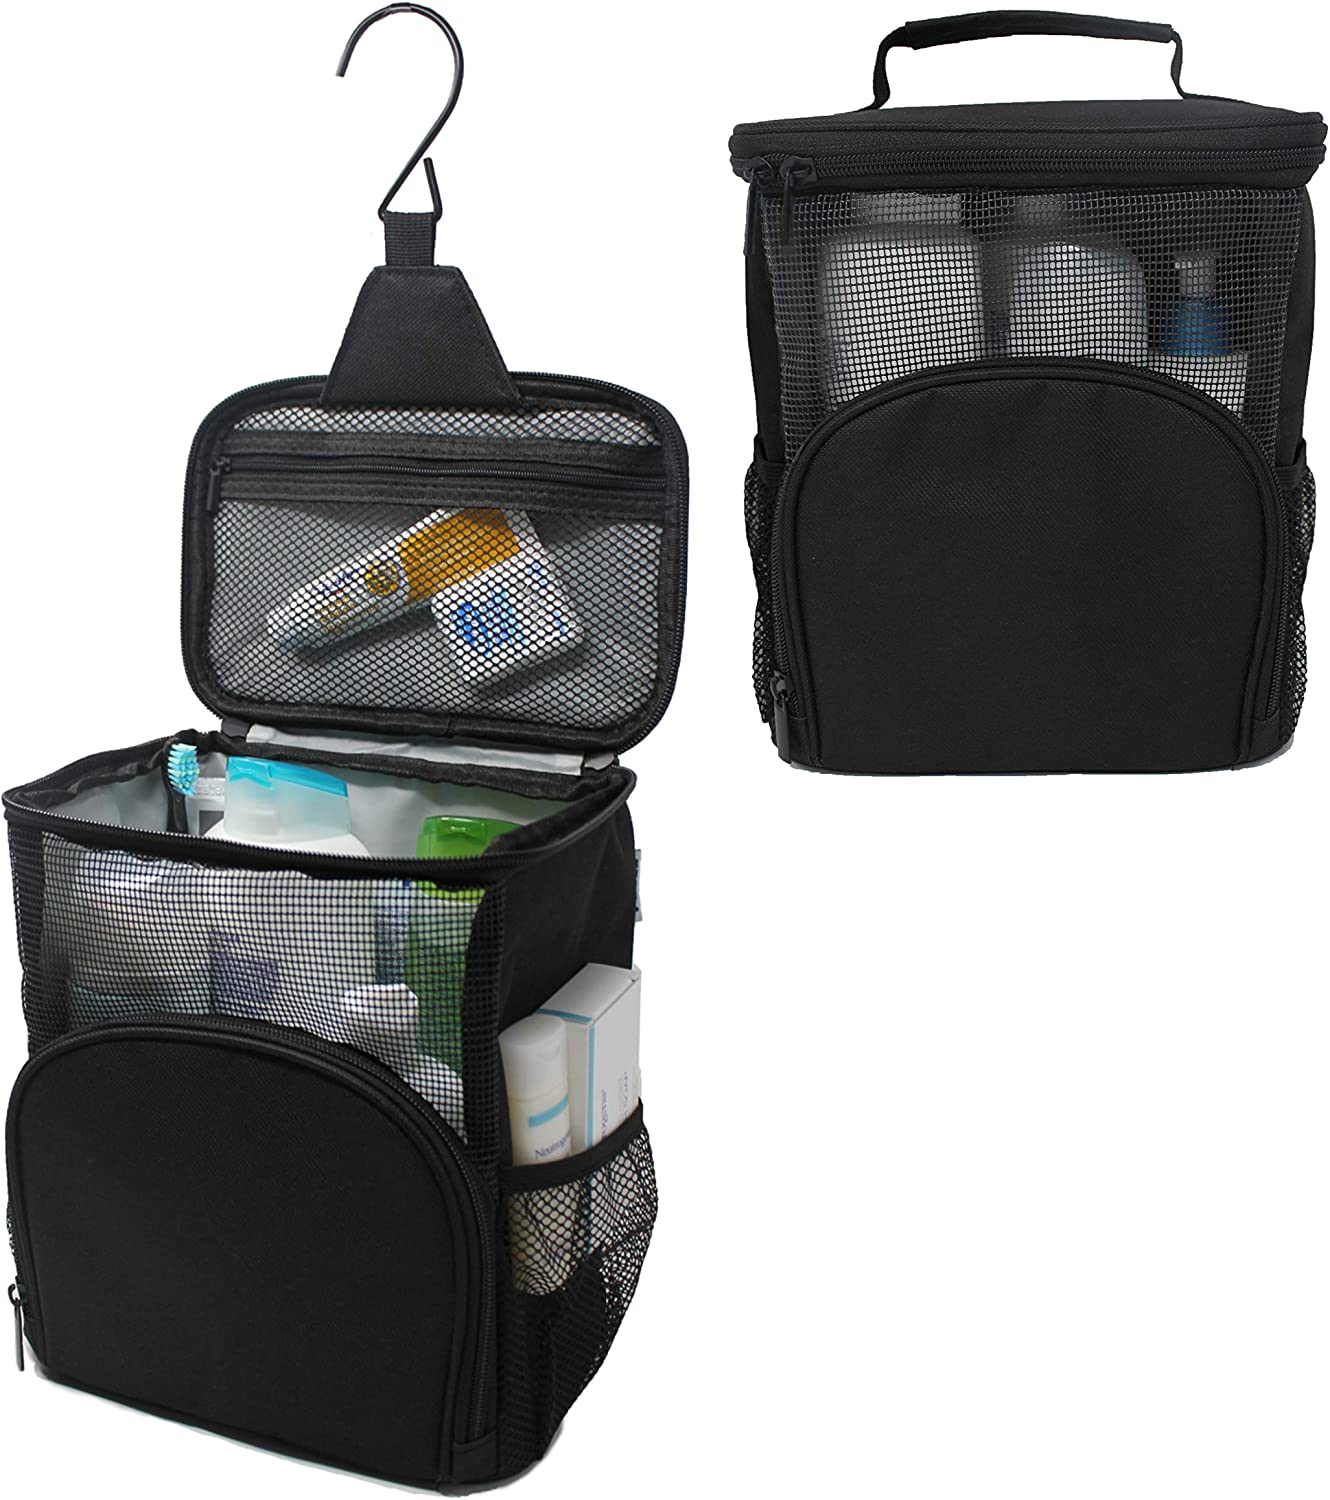 TERRA HOME Portable Shower Caddy - Large Capacity, Quick Dry, Mildew Resistant with Metal Hook - Hanging Shower Bag - Breathable Mesh Toiletry Shower Tote for Gym and College Dorm (Black)